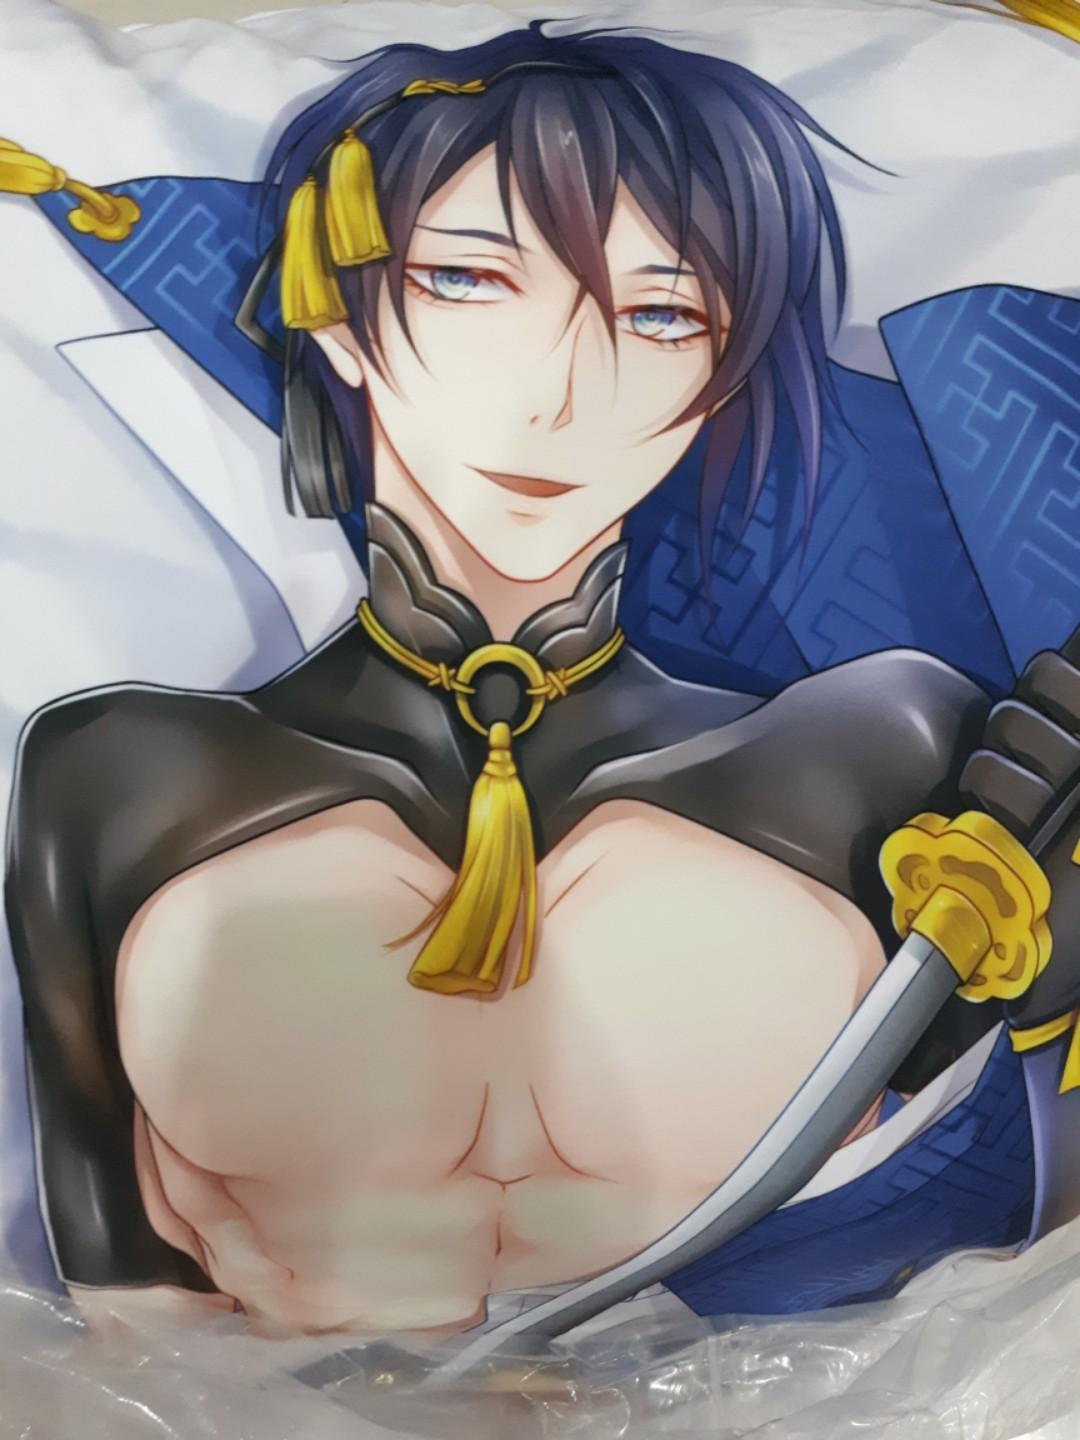 Touken ranbu body pillow and pillow- Mikazuki Munechika